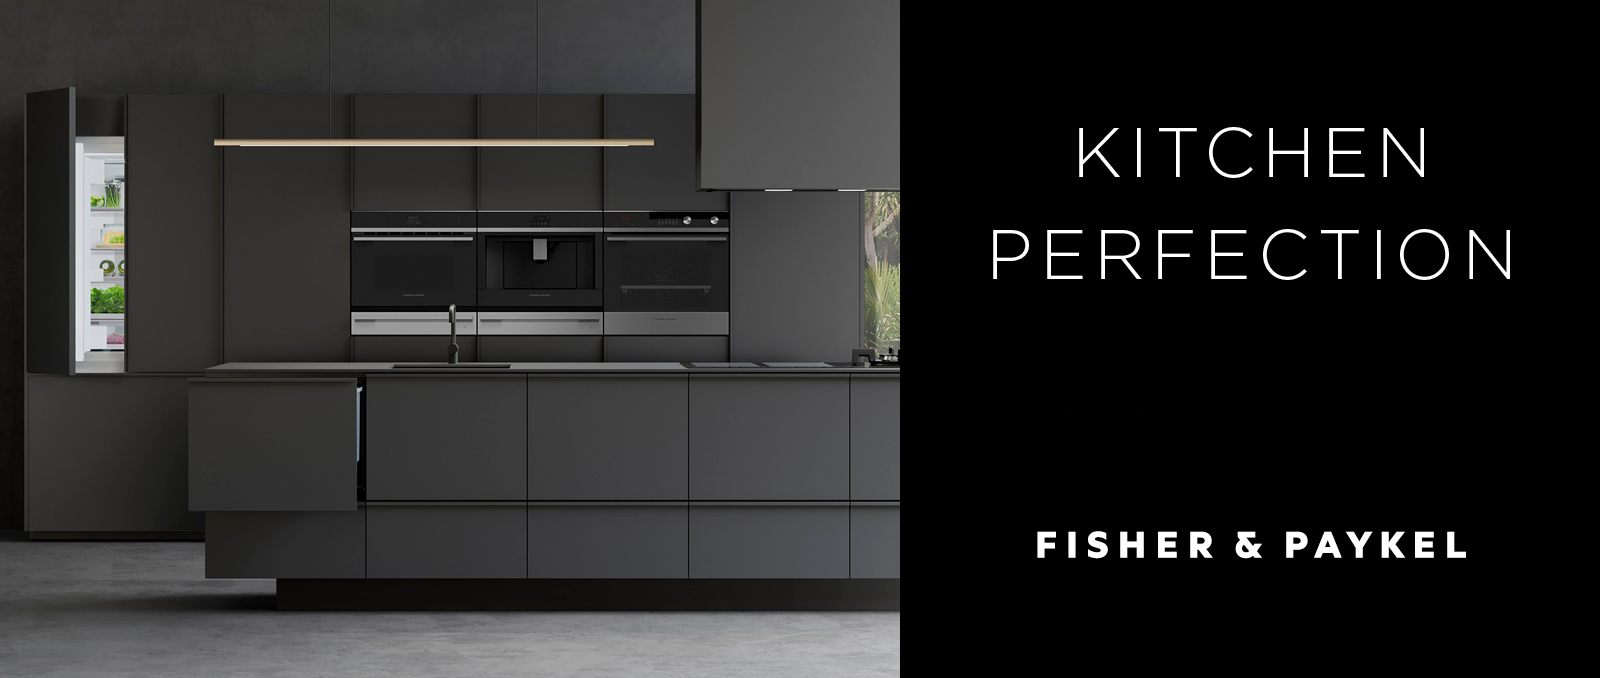 Fisher & Paykel Slider Kitchen Perfection